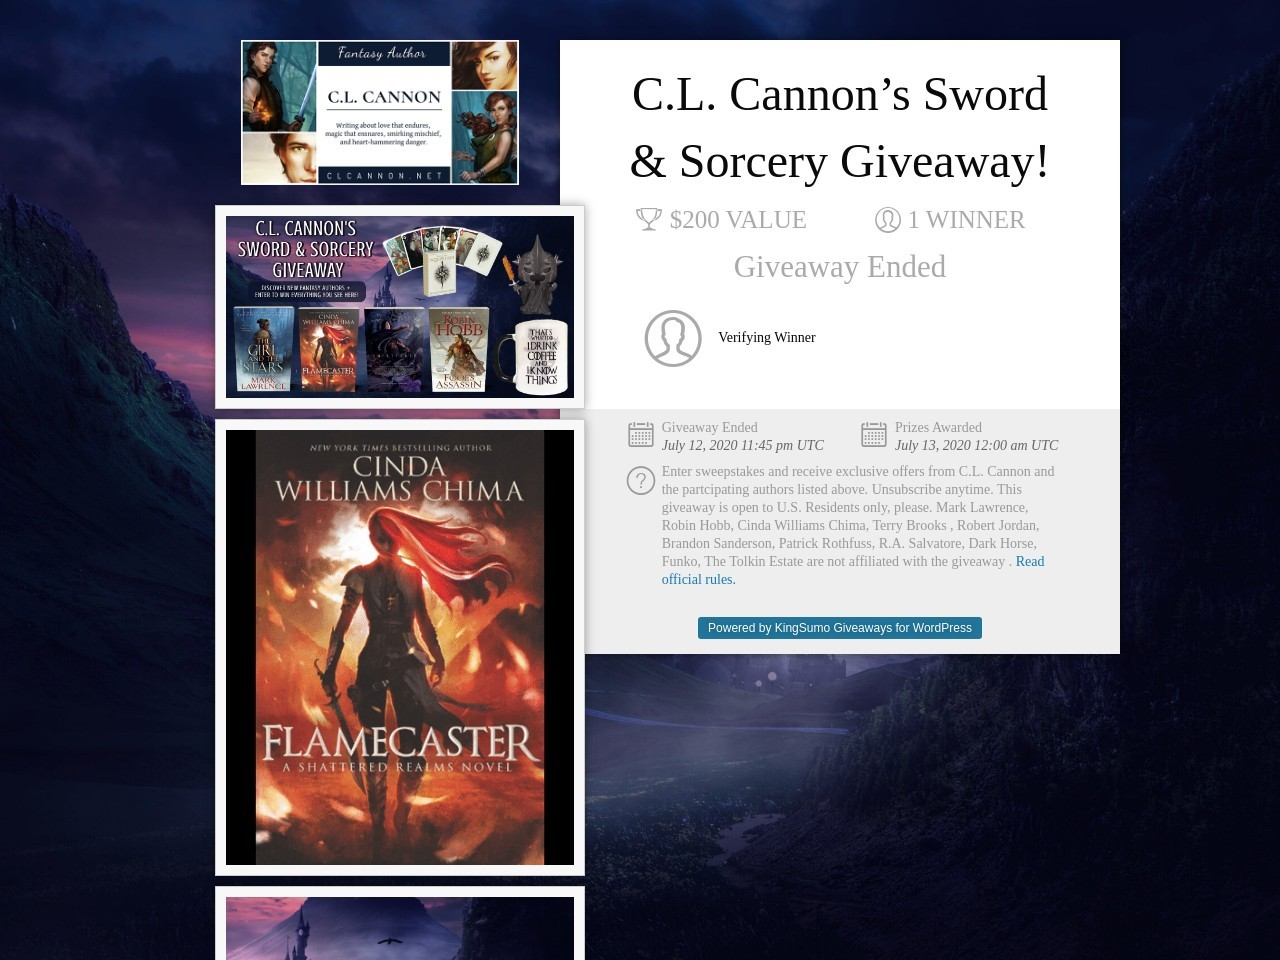 C.L. Cannon's Sword & Sorcery Giveaway!